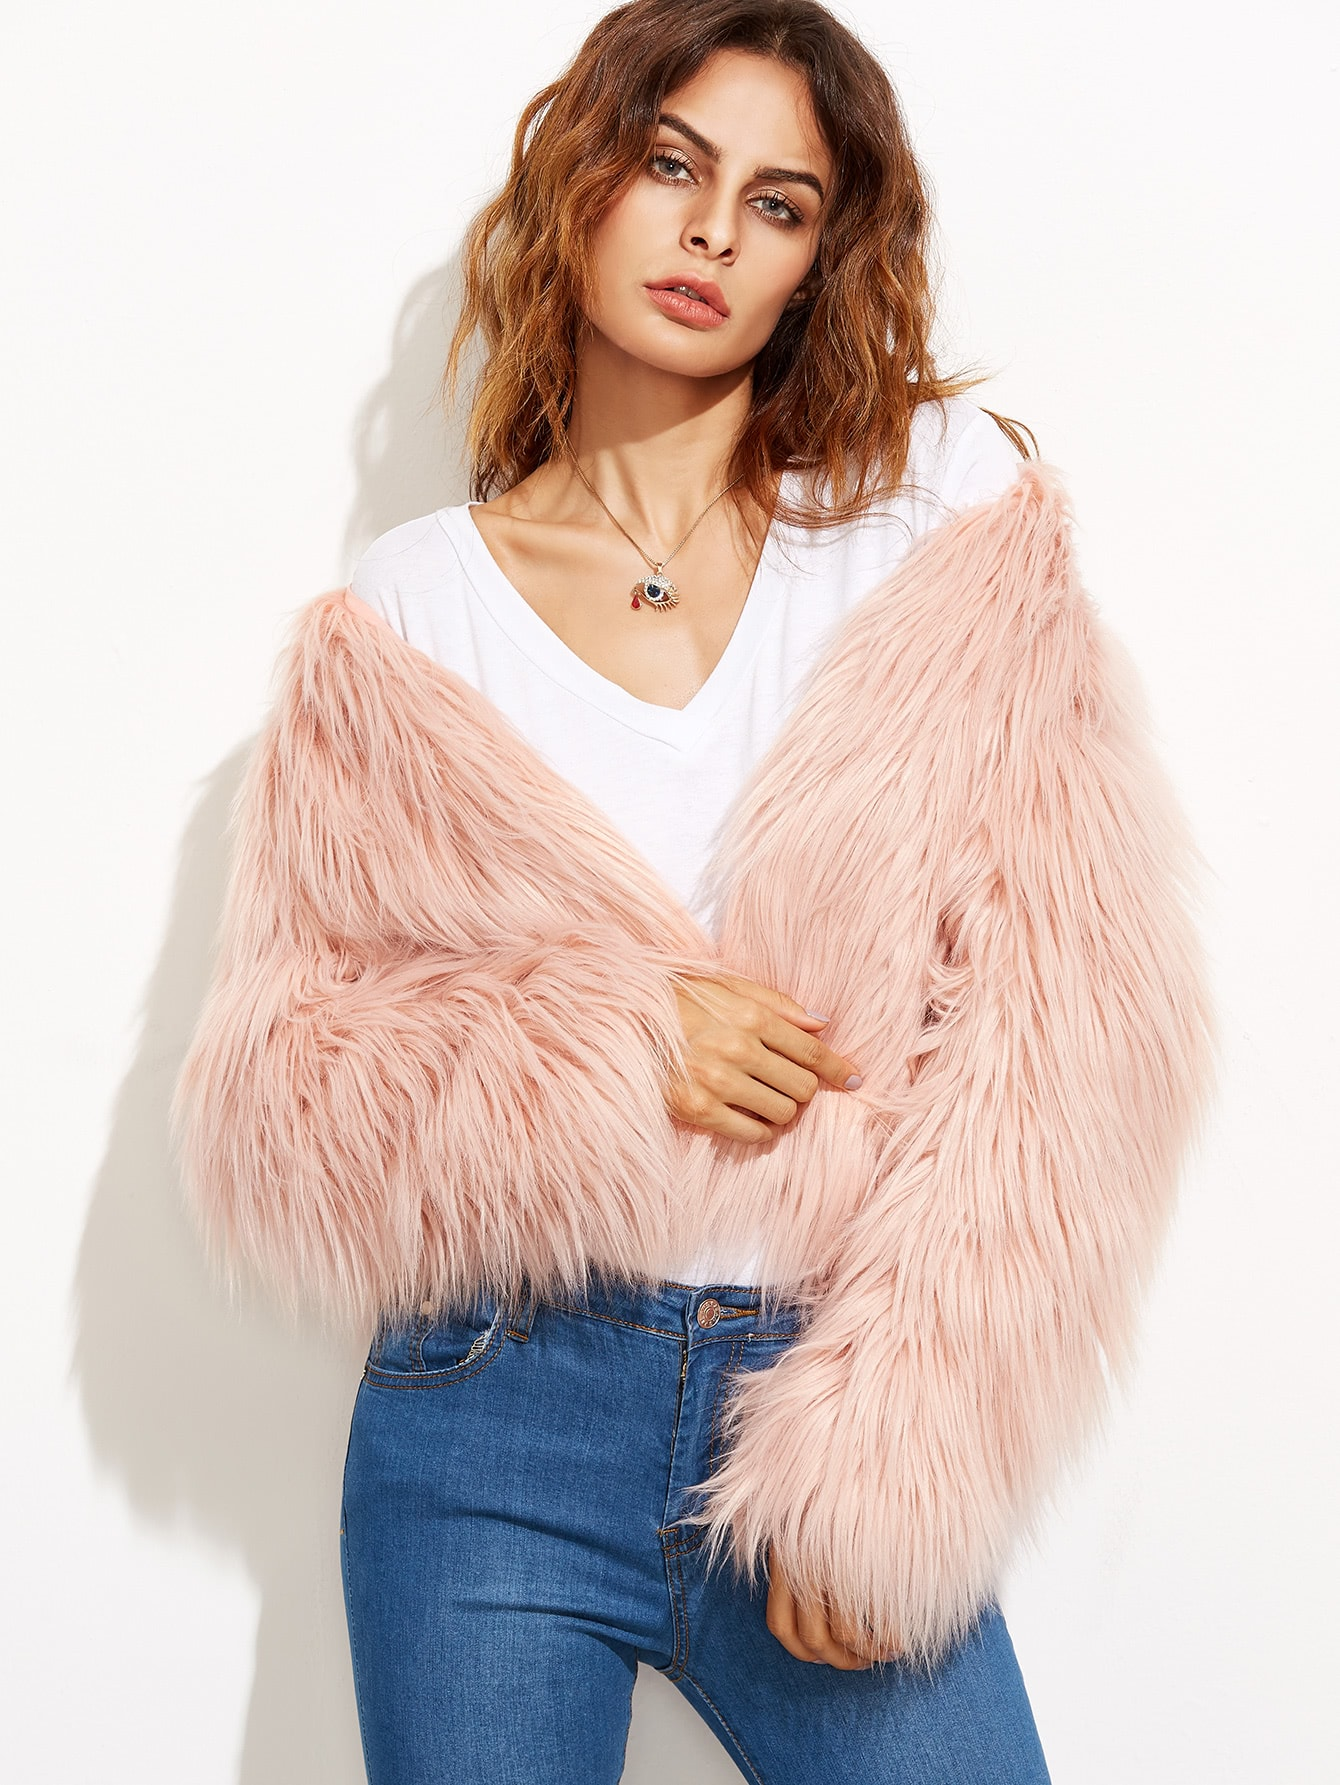 Coat Pink Faux Fur V neck Party Winter Plain Fabric has no stretch Long Sleeve Regular Fit Outerwear.